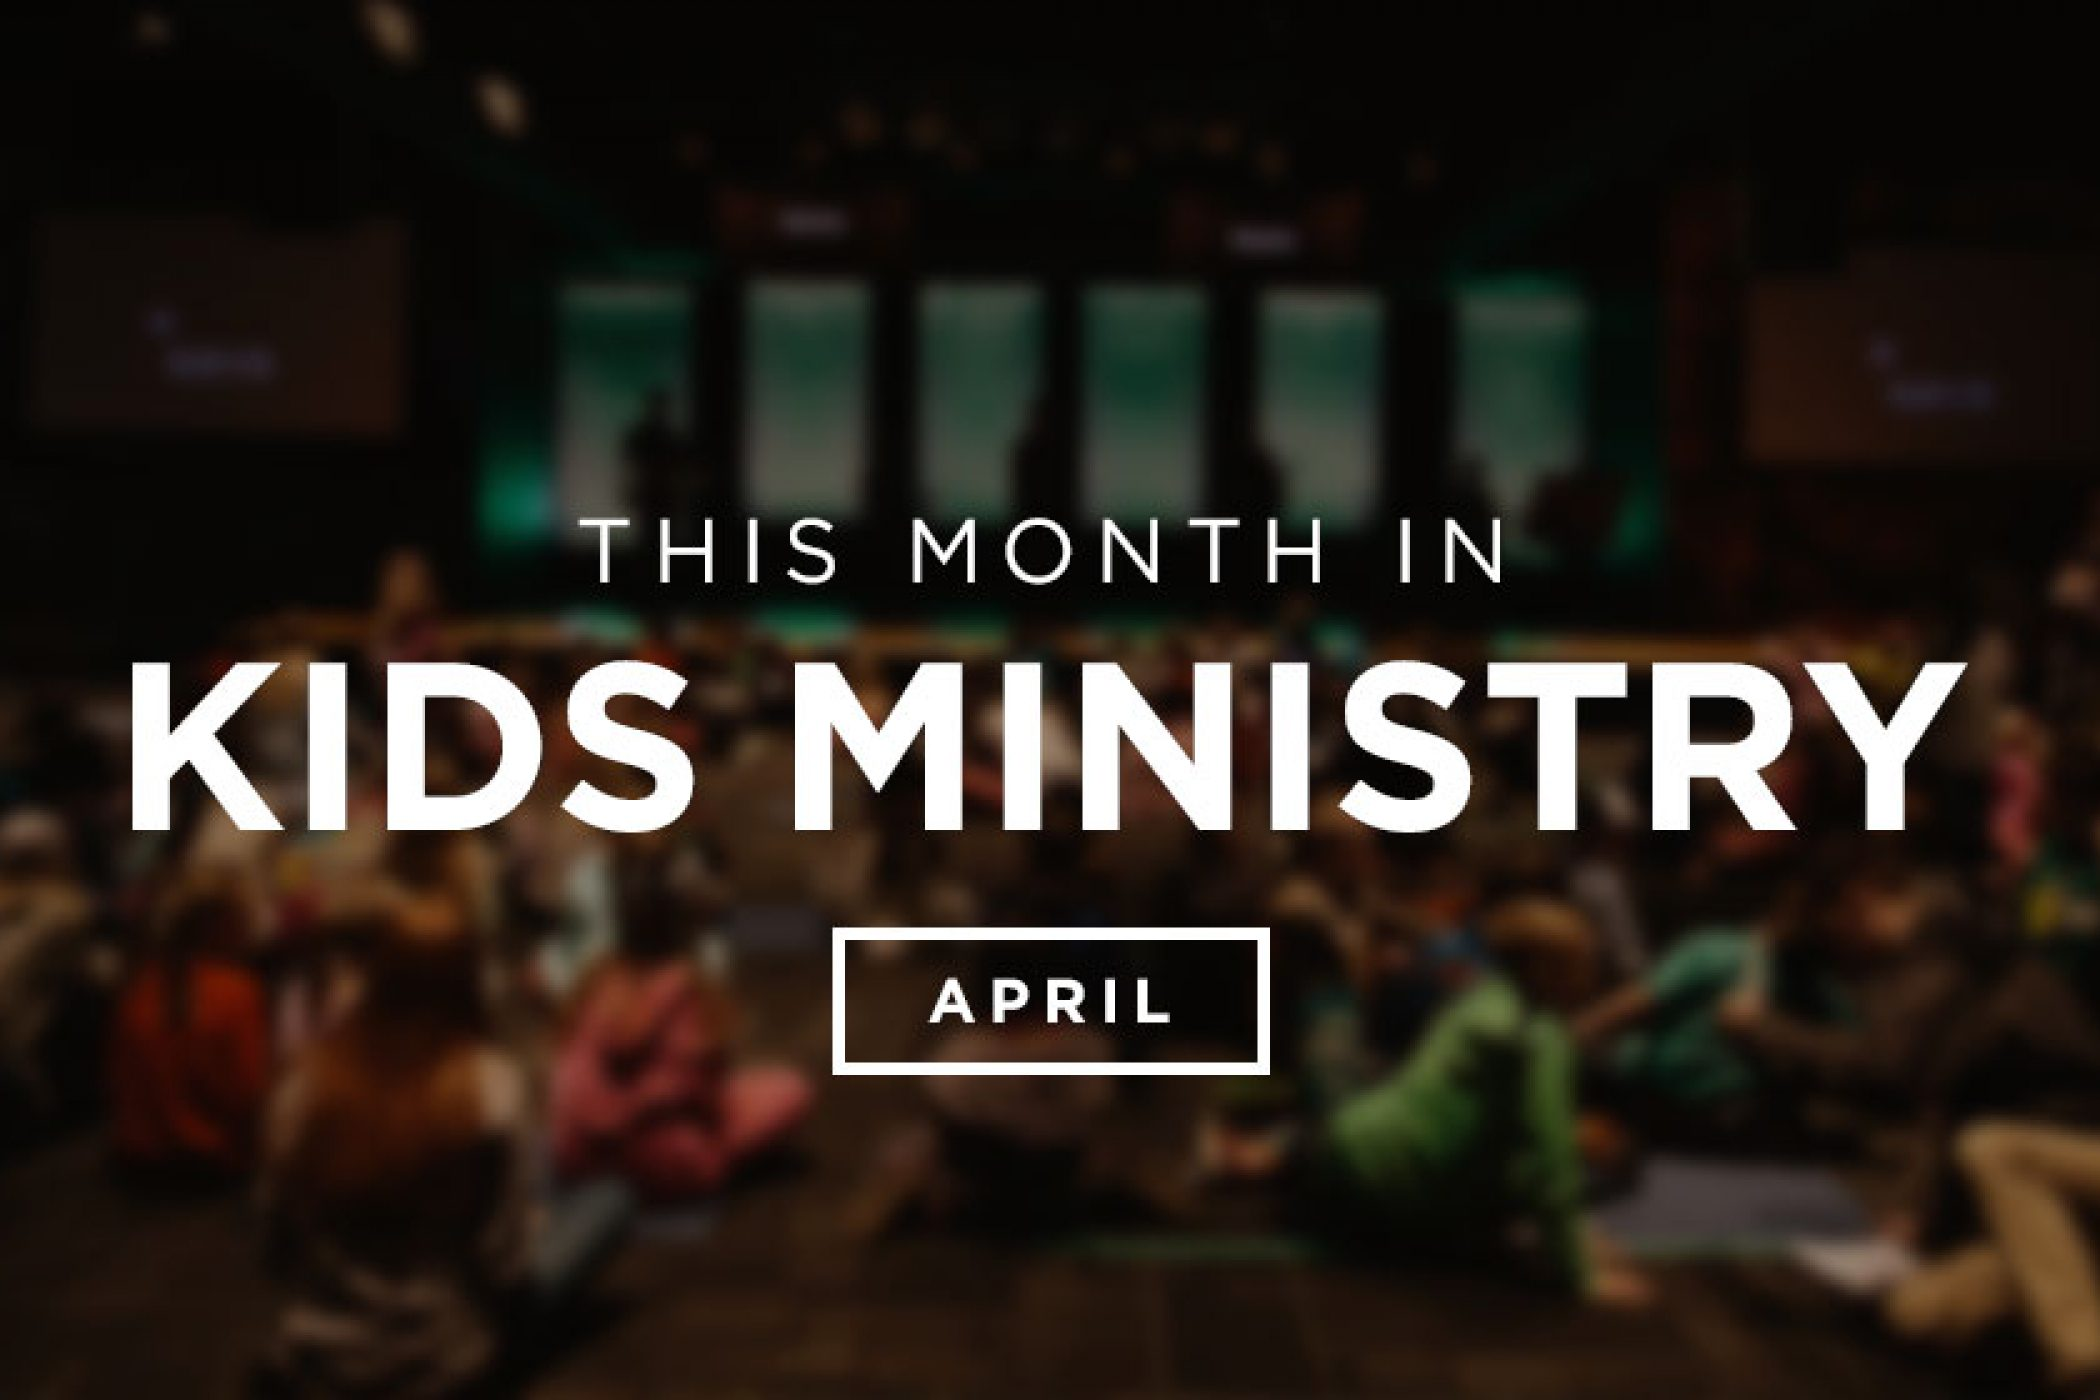 This Month in Kids Ministry - April